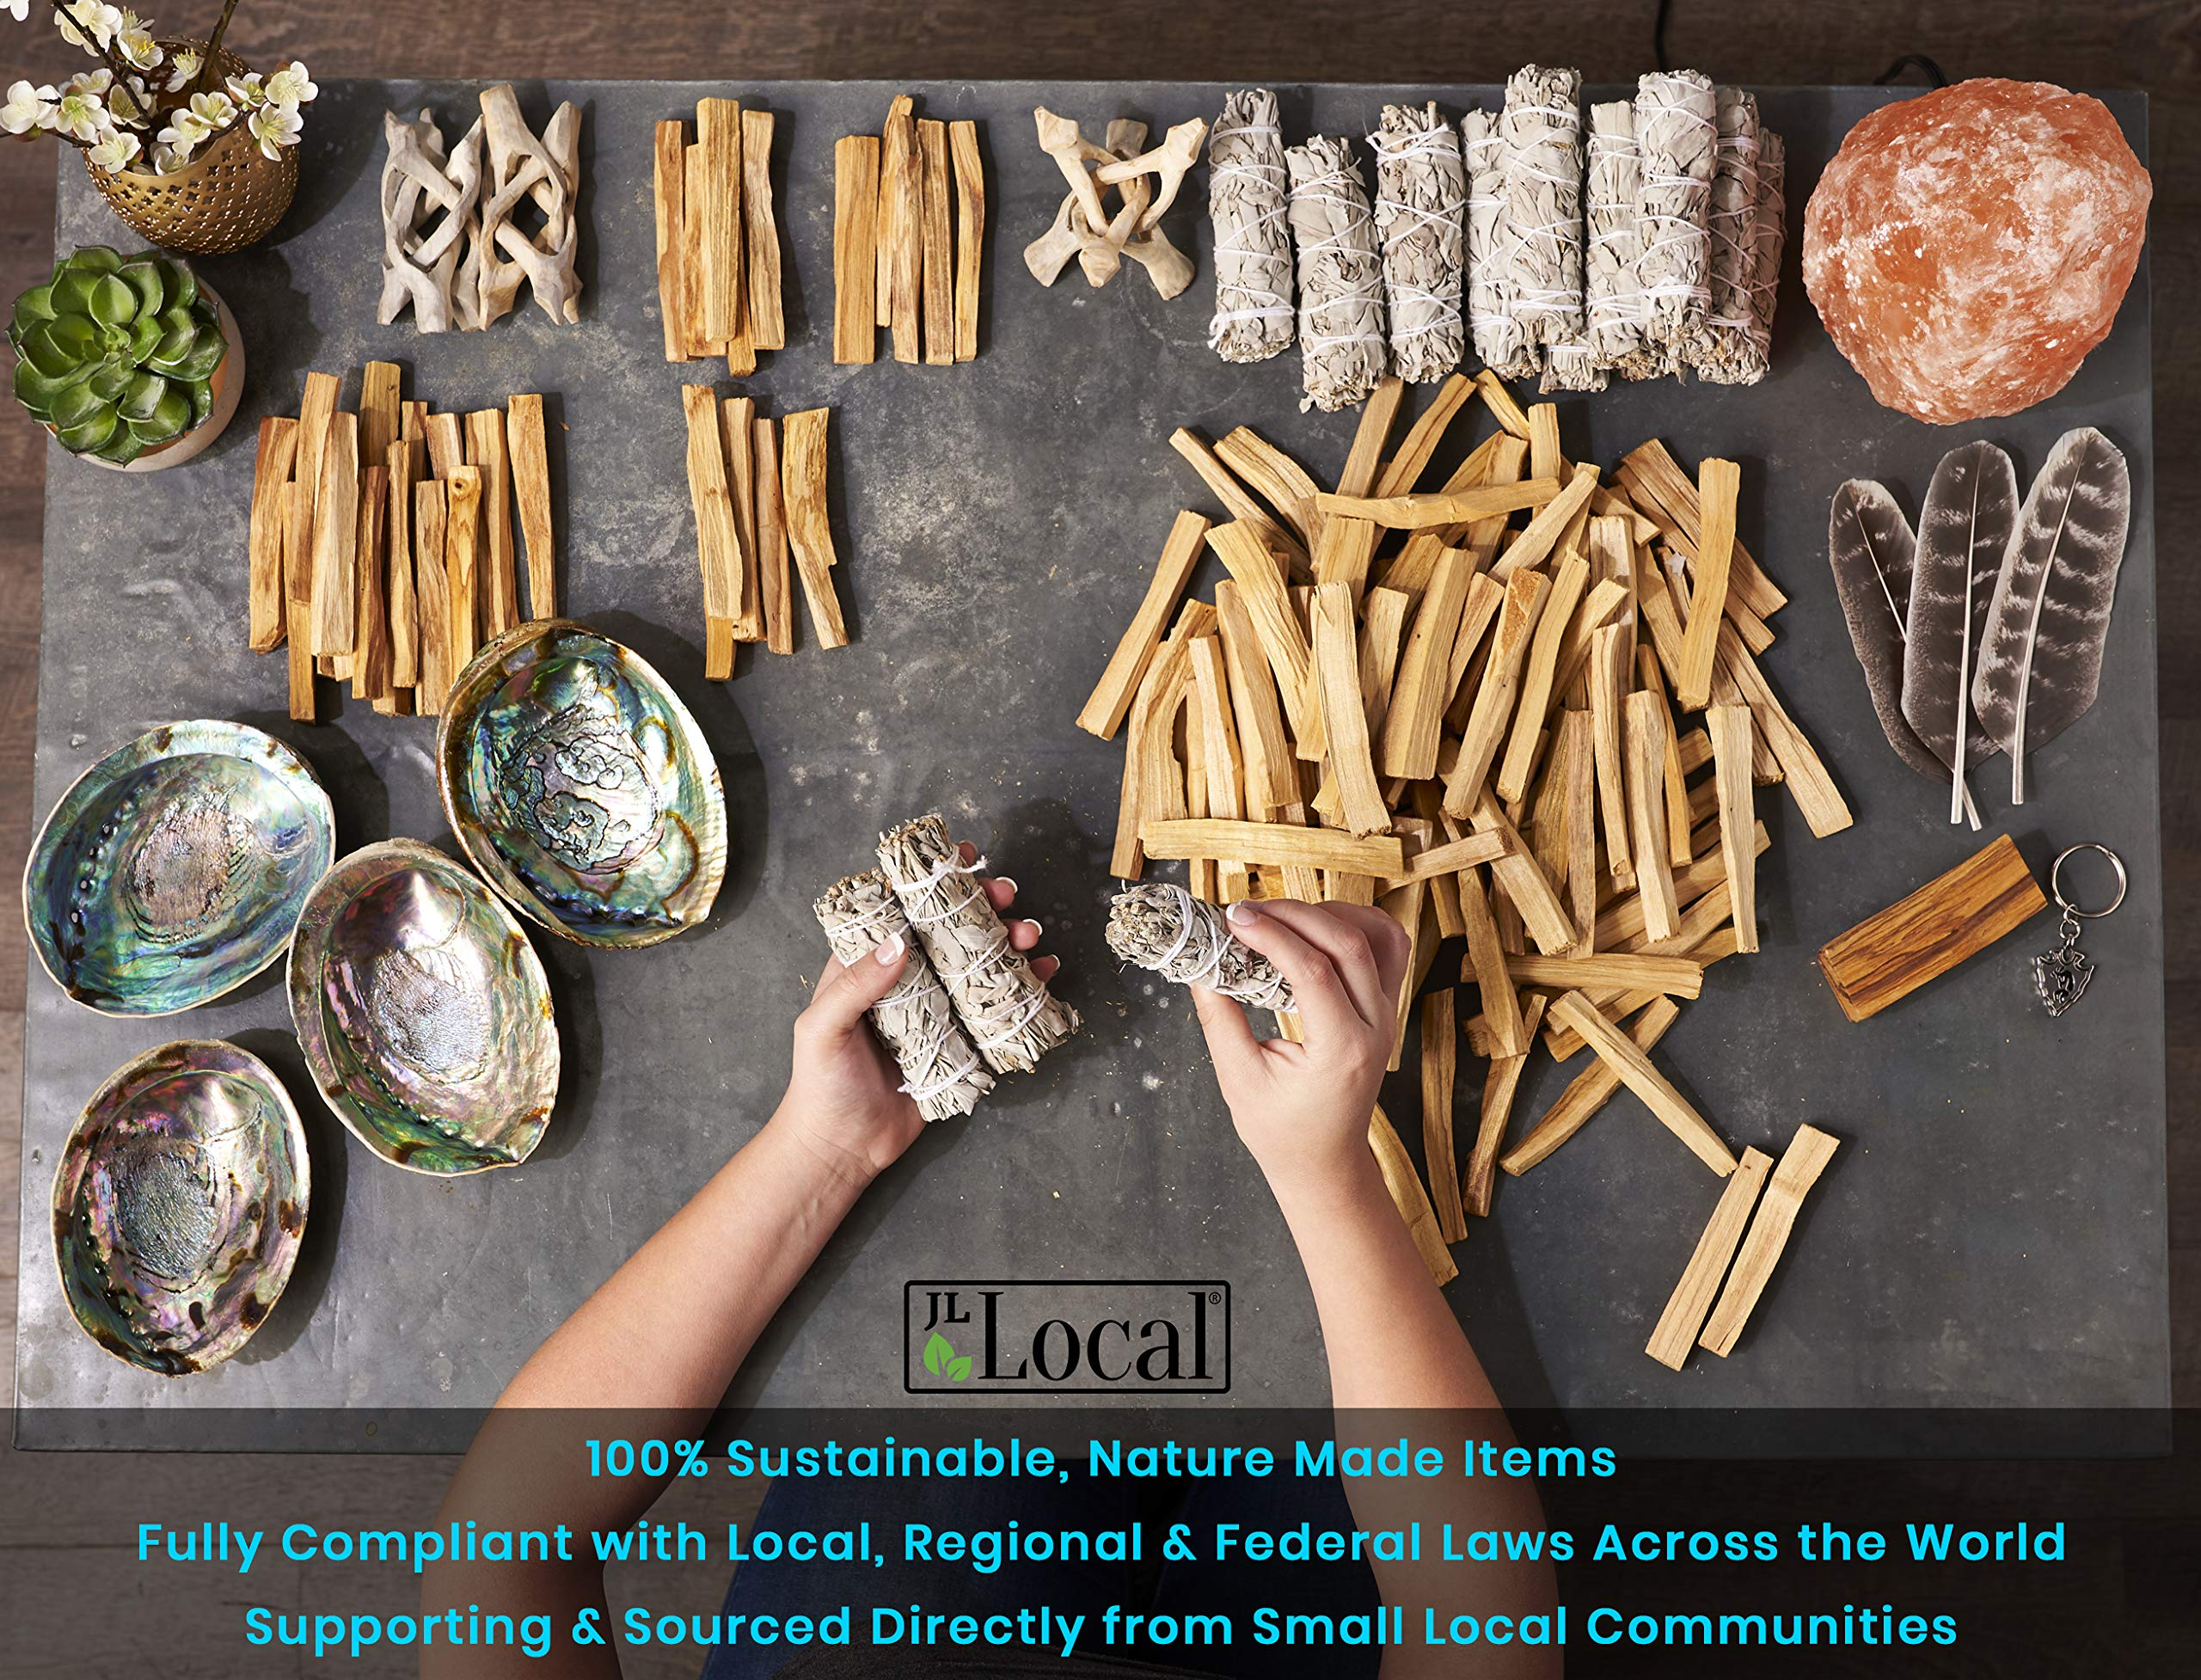 JL Local Smudge Kit - Sage, Palo Santo, Abalone Shell, Feather + More! Yoga, Meditating, Purify, Cleanse by JL Local (Image #6)